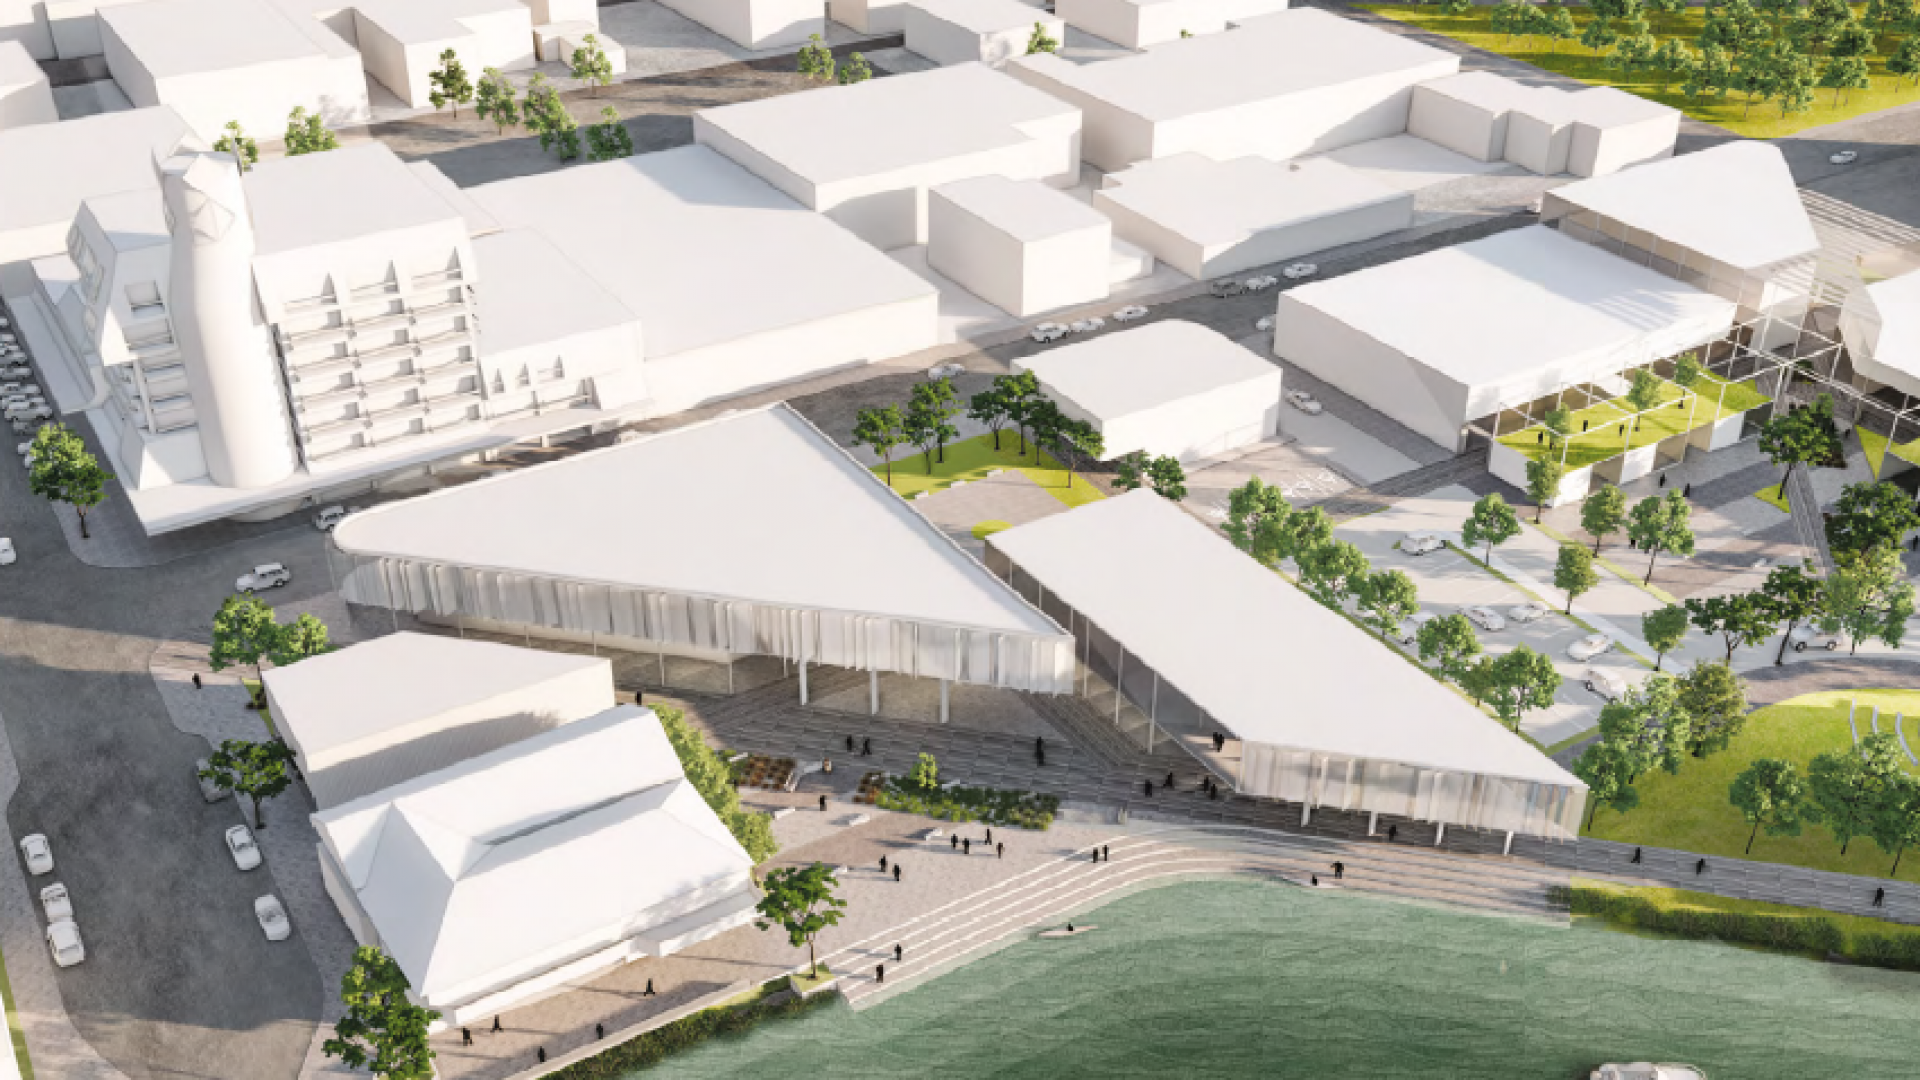 Concept image of new library